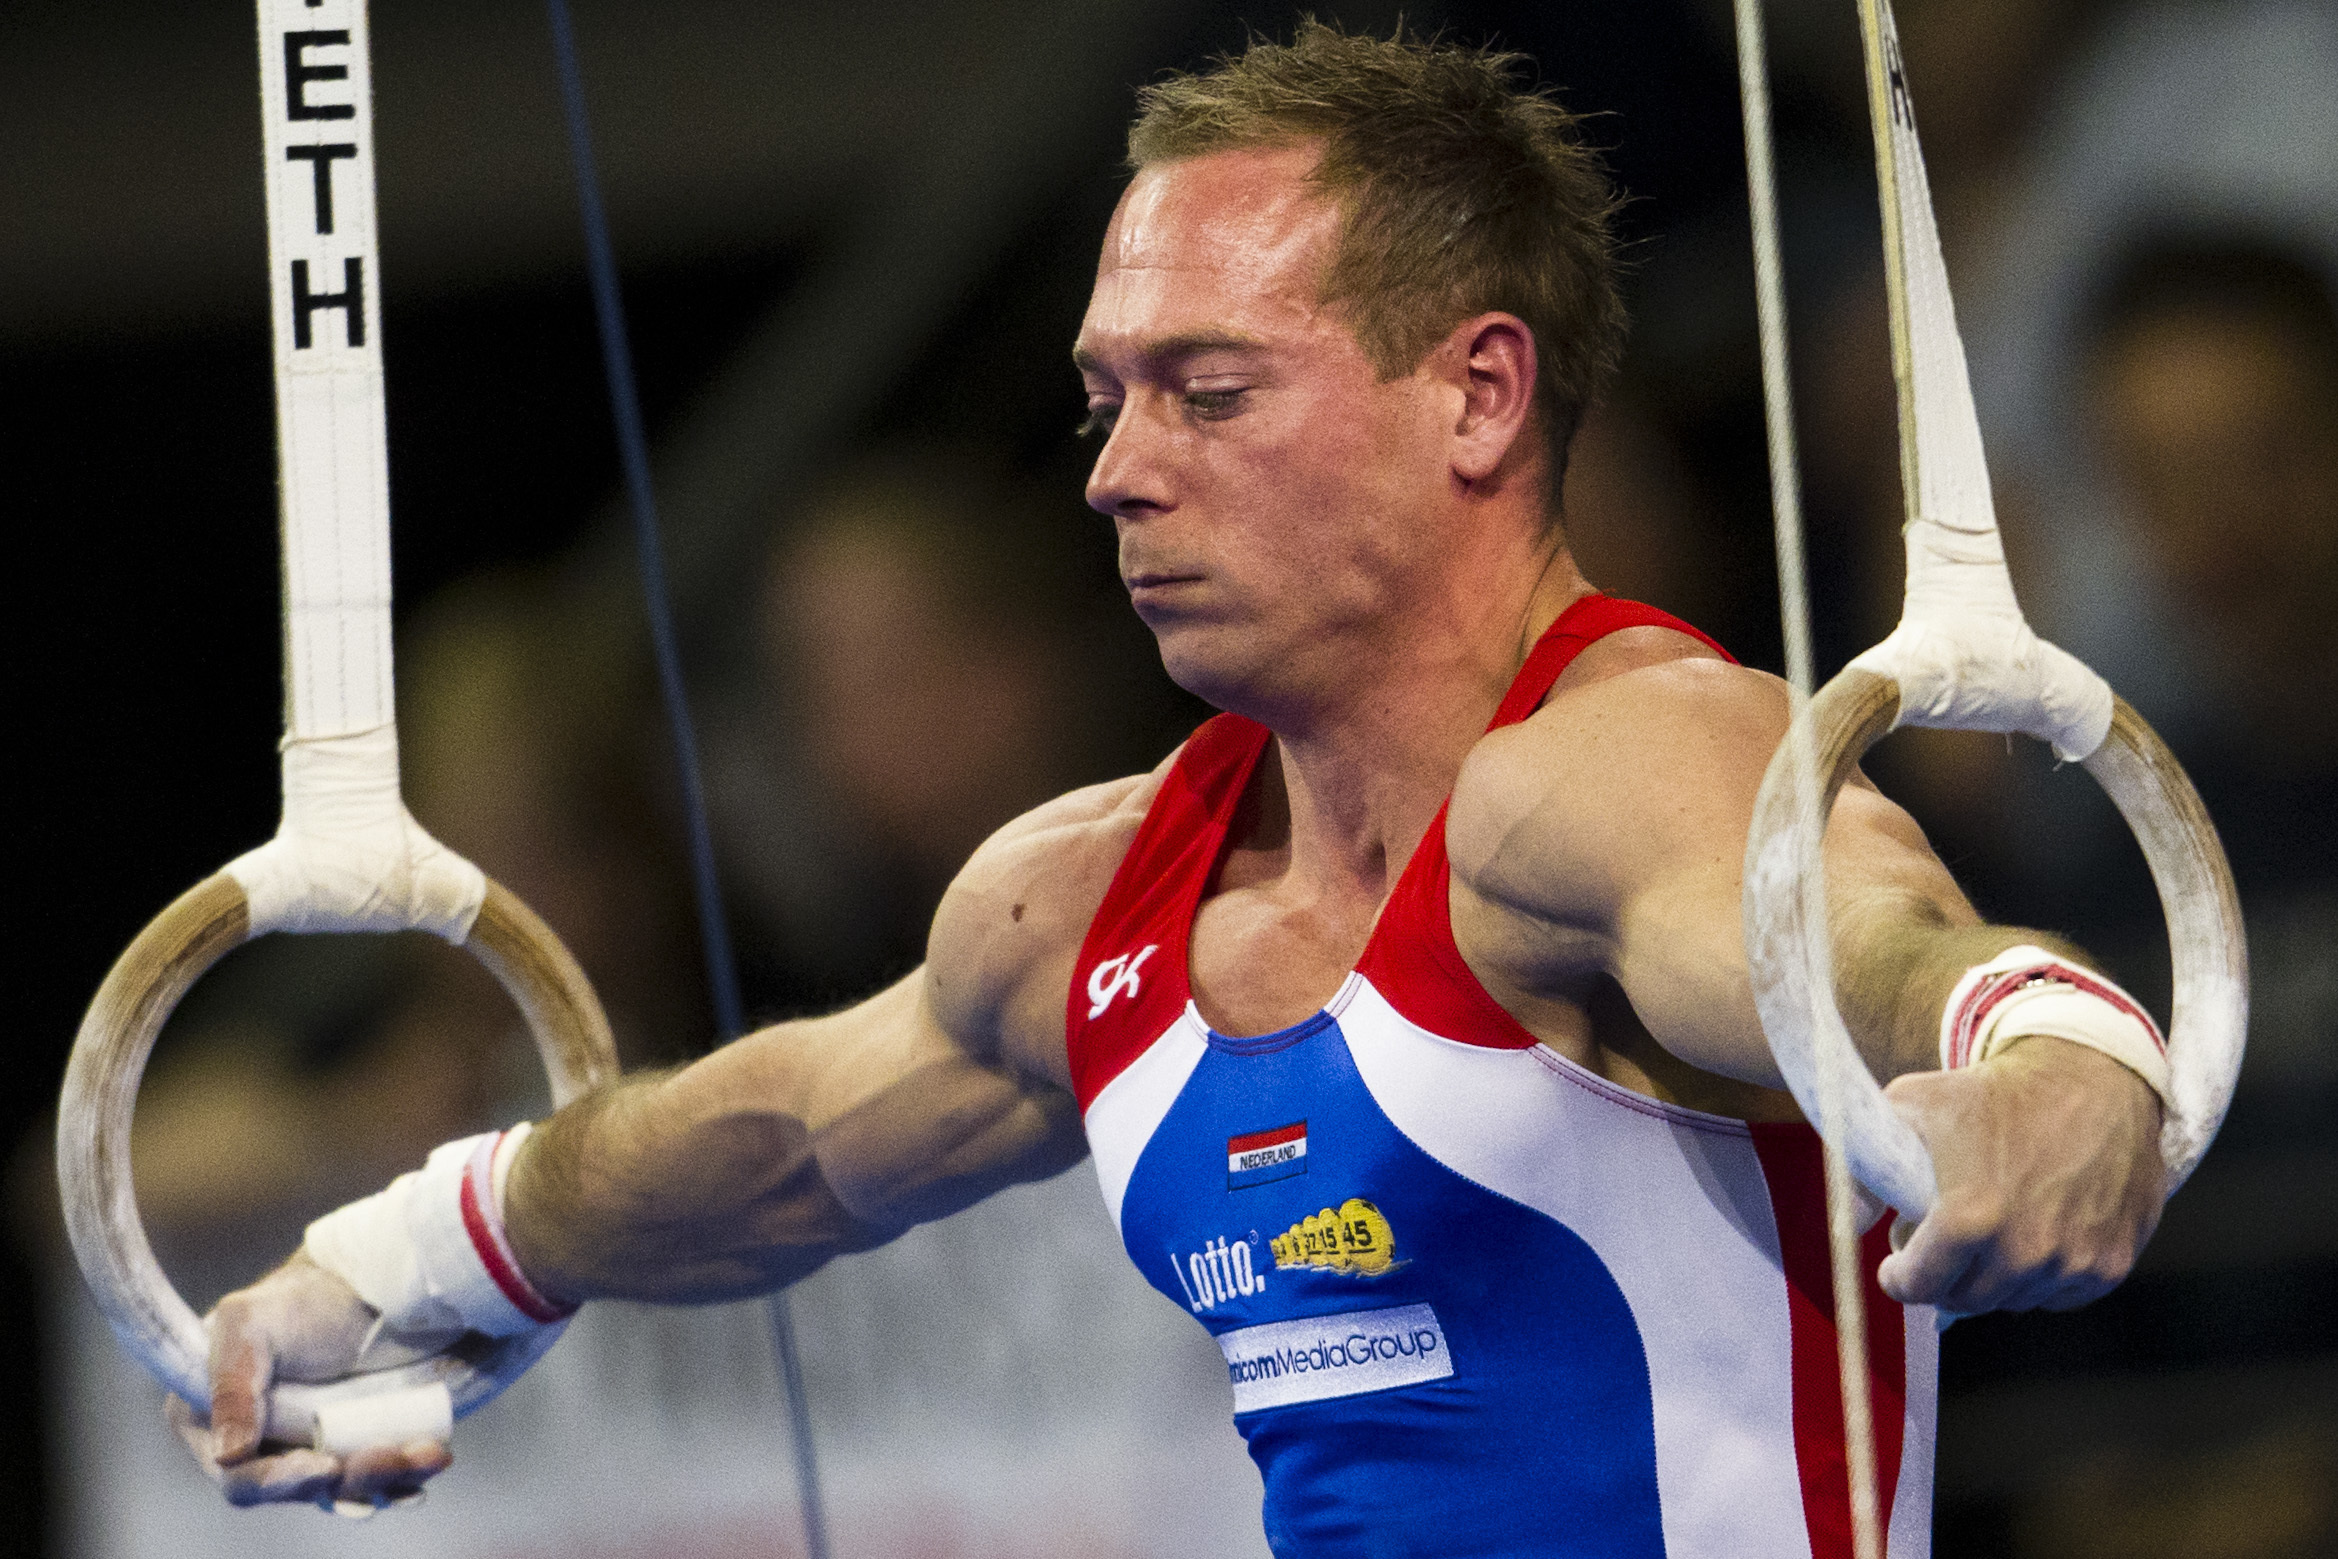 FILE - In this April 9, 2011 file photo, Netherlands' Yuri van Gelder competes the men's rings final at the Artistic Gymnastics European Championships in Berlin, Germany. Yuri van Gelder lost his legal battle Friday, Aug. 12, 2016 to rejoin the Dutch Olym